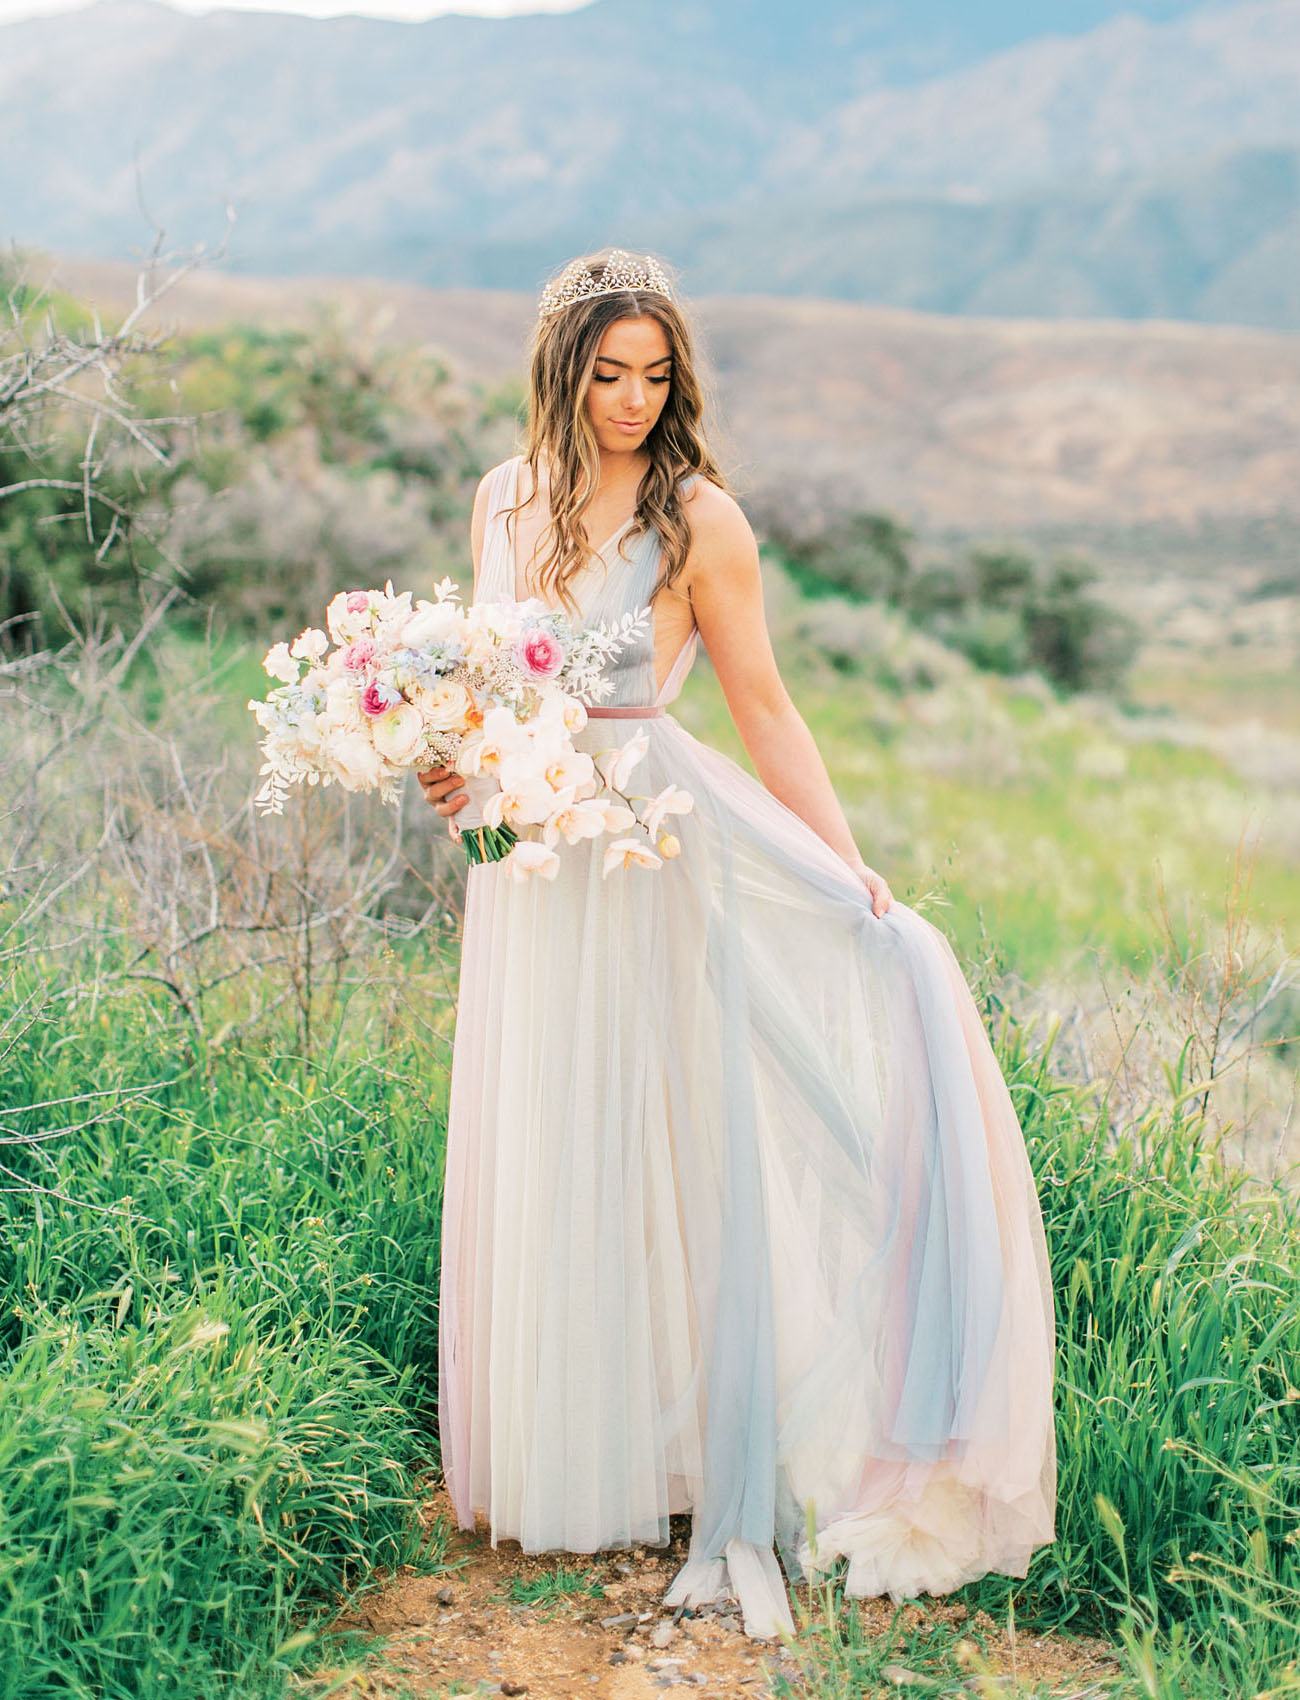 Rainbow Wedding Dress Inspiration